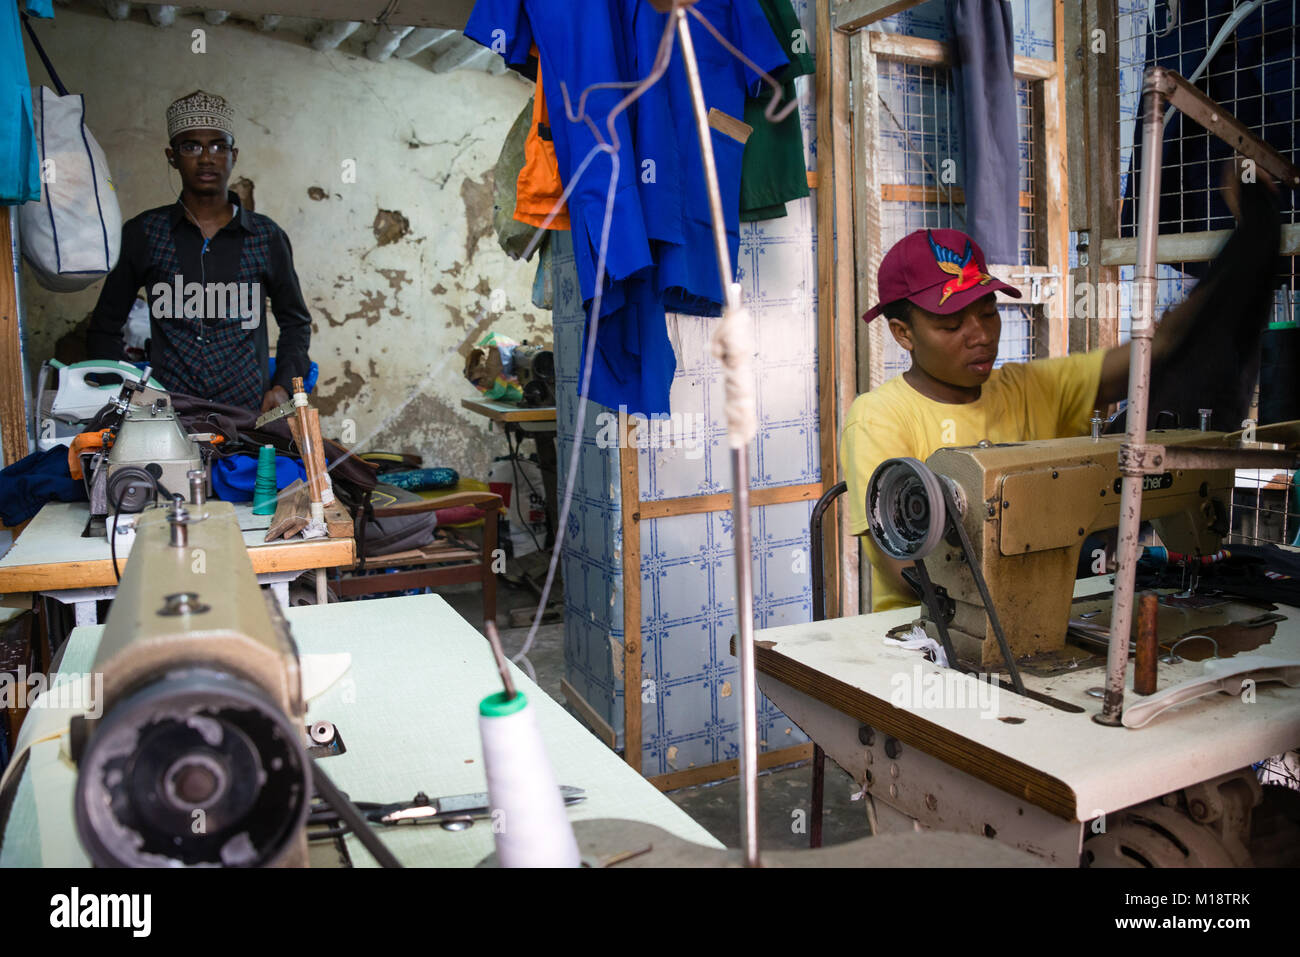 STONE TOWN, ZANZIBAR - DEC 31, 2017: Tailor men sewing garments with industrial machines in workshop, Stone Town, - Stock Image